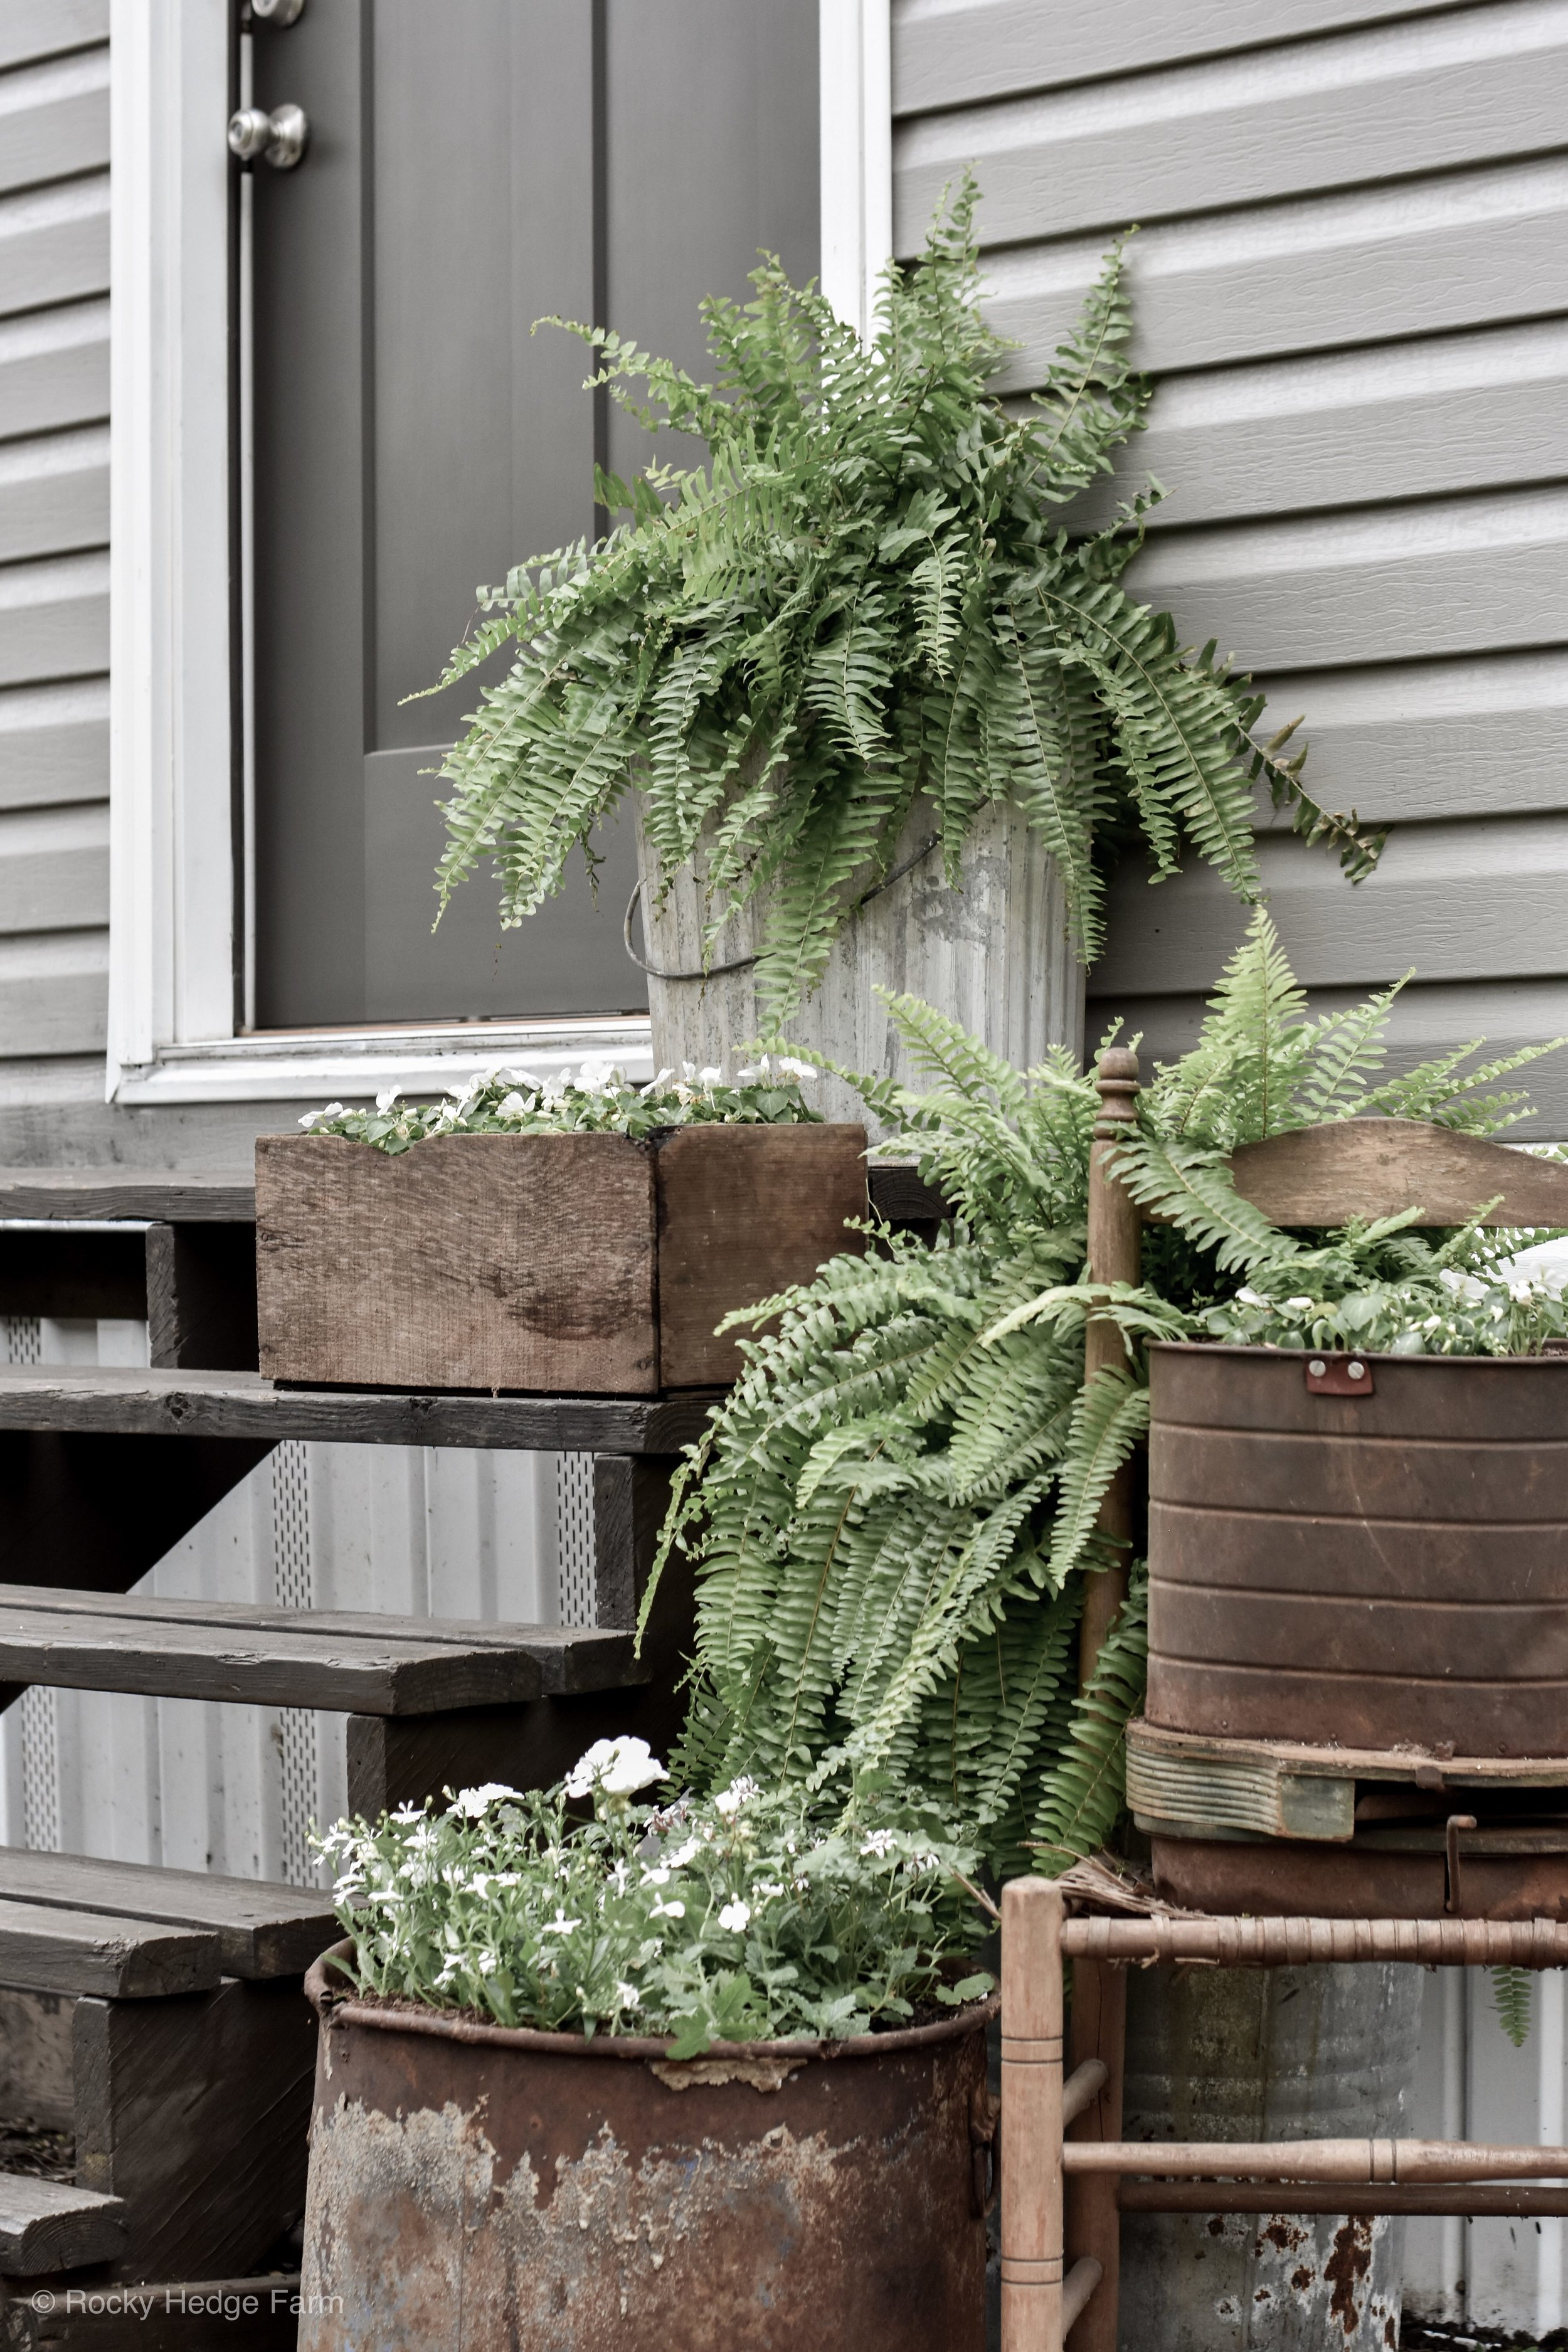 Old antique vintage galvanized flower containers | Rocky Hedge Farm